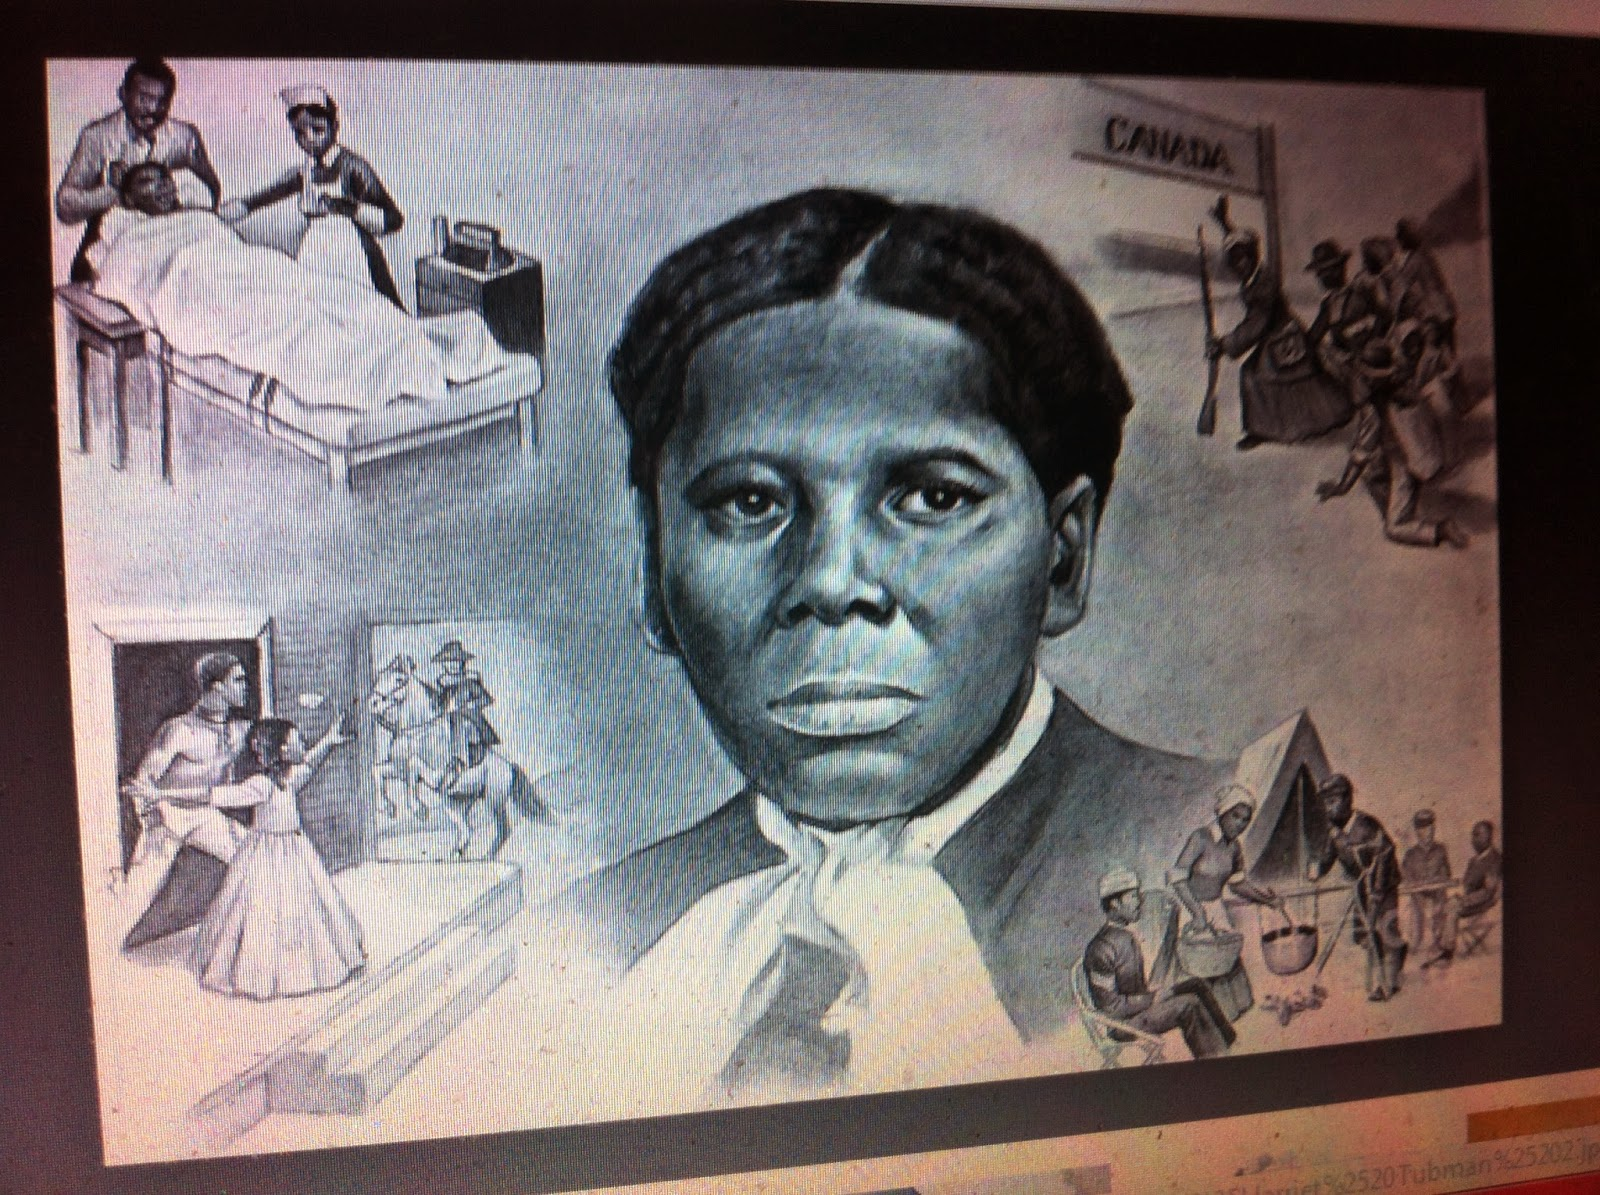 a biography of harriet tubman an african american abolitionist humanitarian and union spy Harriet tubman was an african-american abolitionist, humanitarian, and union spy during the american civil war born into slavery, tubman escaped and subsequently made more than thirteen missions to read more.